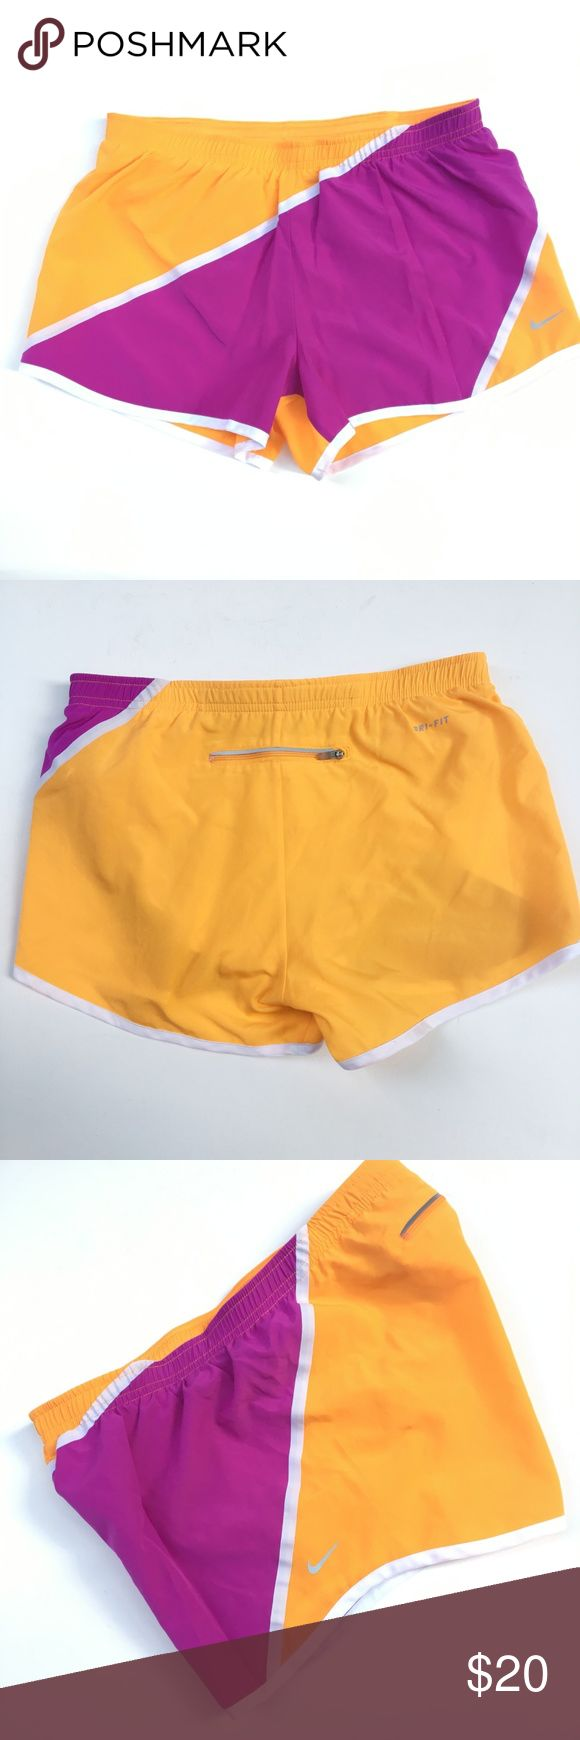 "Nike Running Shorts Nylon Dri Fit Pockets Orange Nike Women's Shorts Orange Fuschia Dri-Fit, Running Shorts, Mesh Built In Panties, Drawstring Elastic Waist, Reflective Swoosh, Diagonal Design. Interior Pocket for Keys.  Back Waist Zipper Pouch. Size: S Small  Waist: 14.25""  Inseam: 3"" Rise: 10.5""  Length: 10""  Condition: Very Good. Comes from a pet and smoke free environment!  Please review pictures and contact me if you have any questions. Color: Orange Fuschia Material: 100% Nylon…"